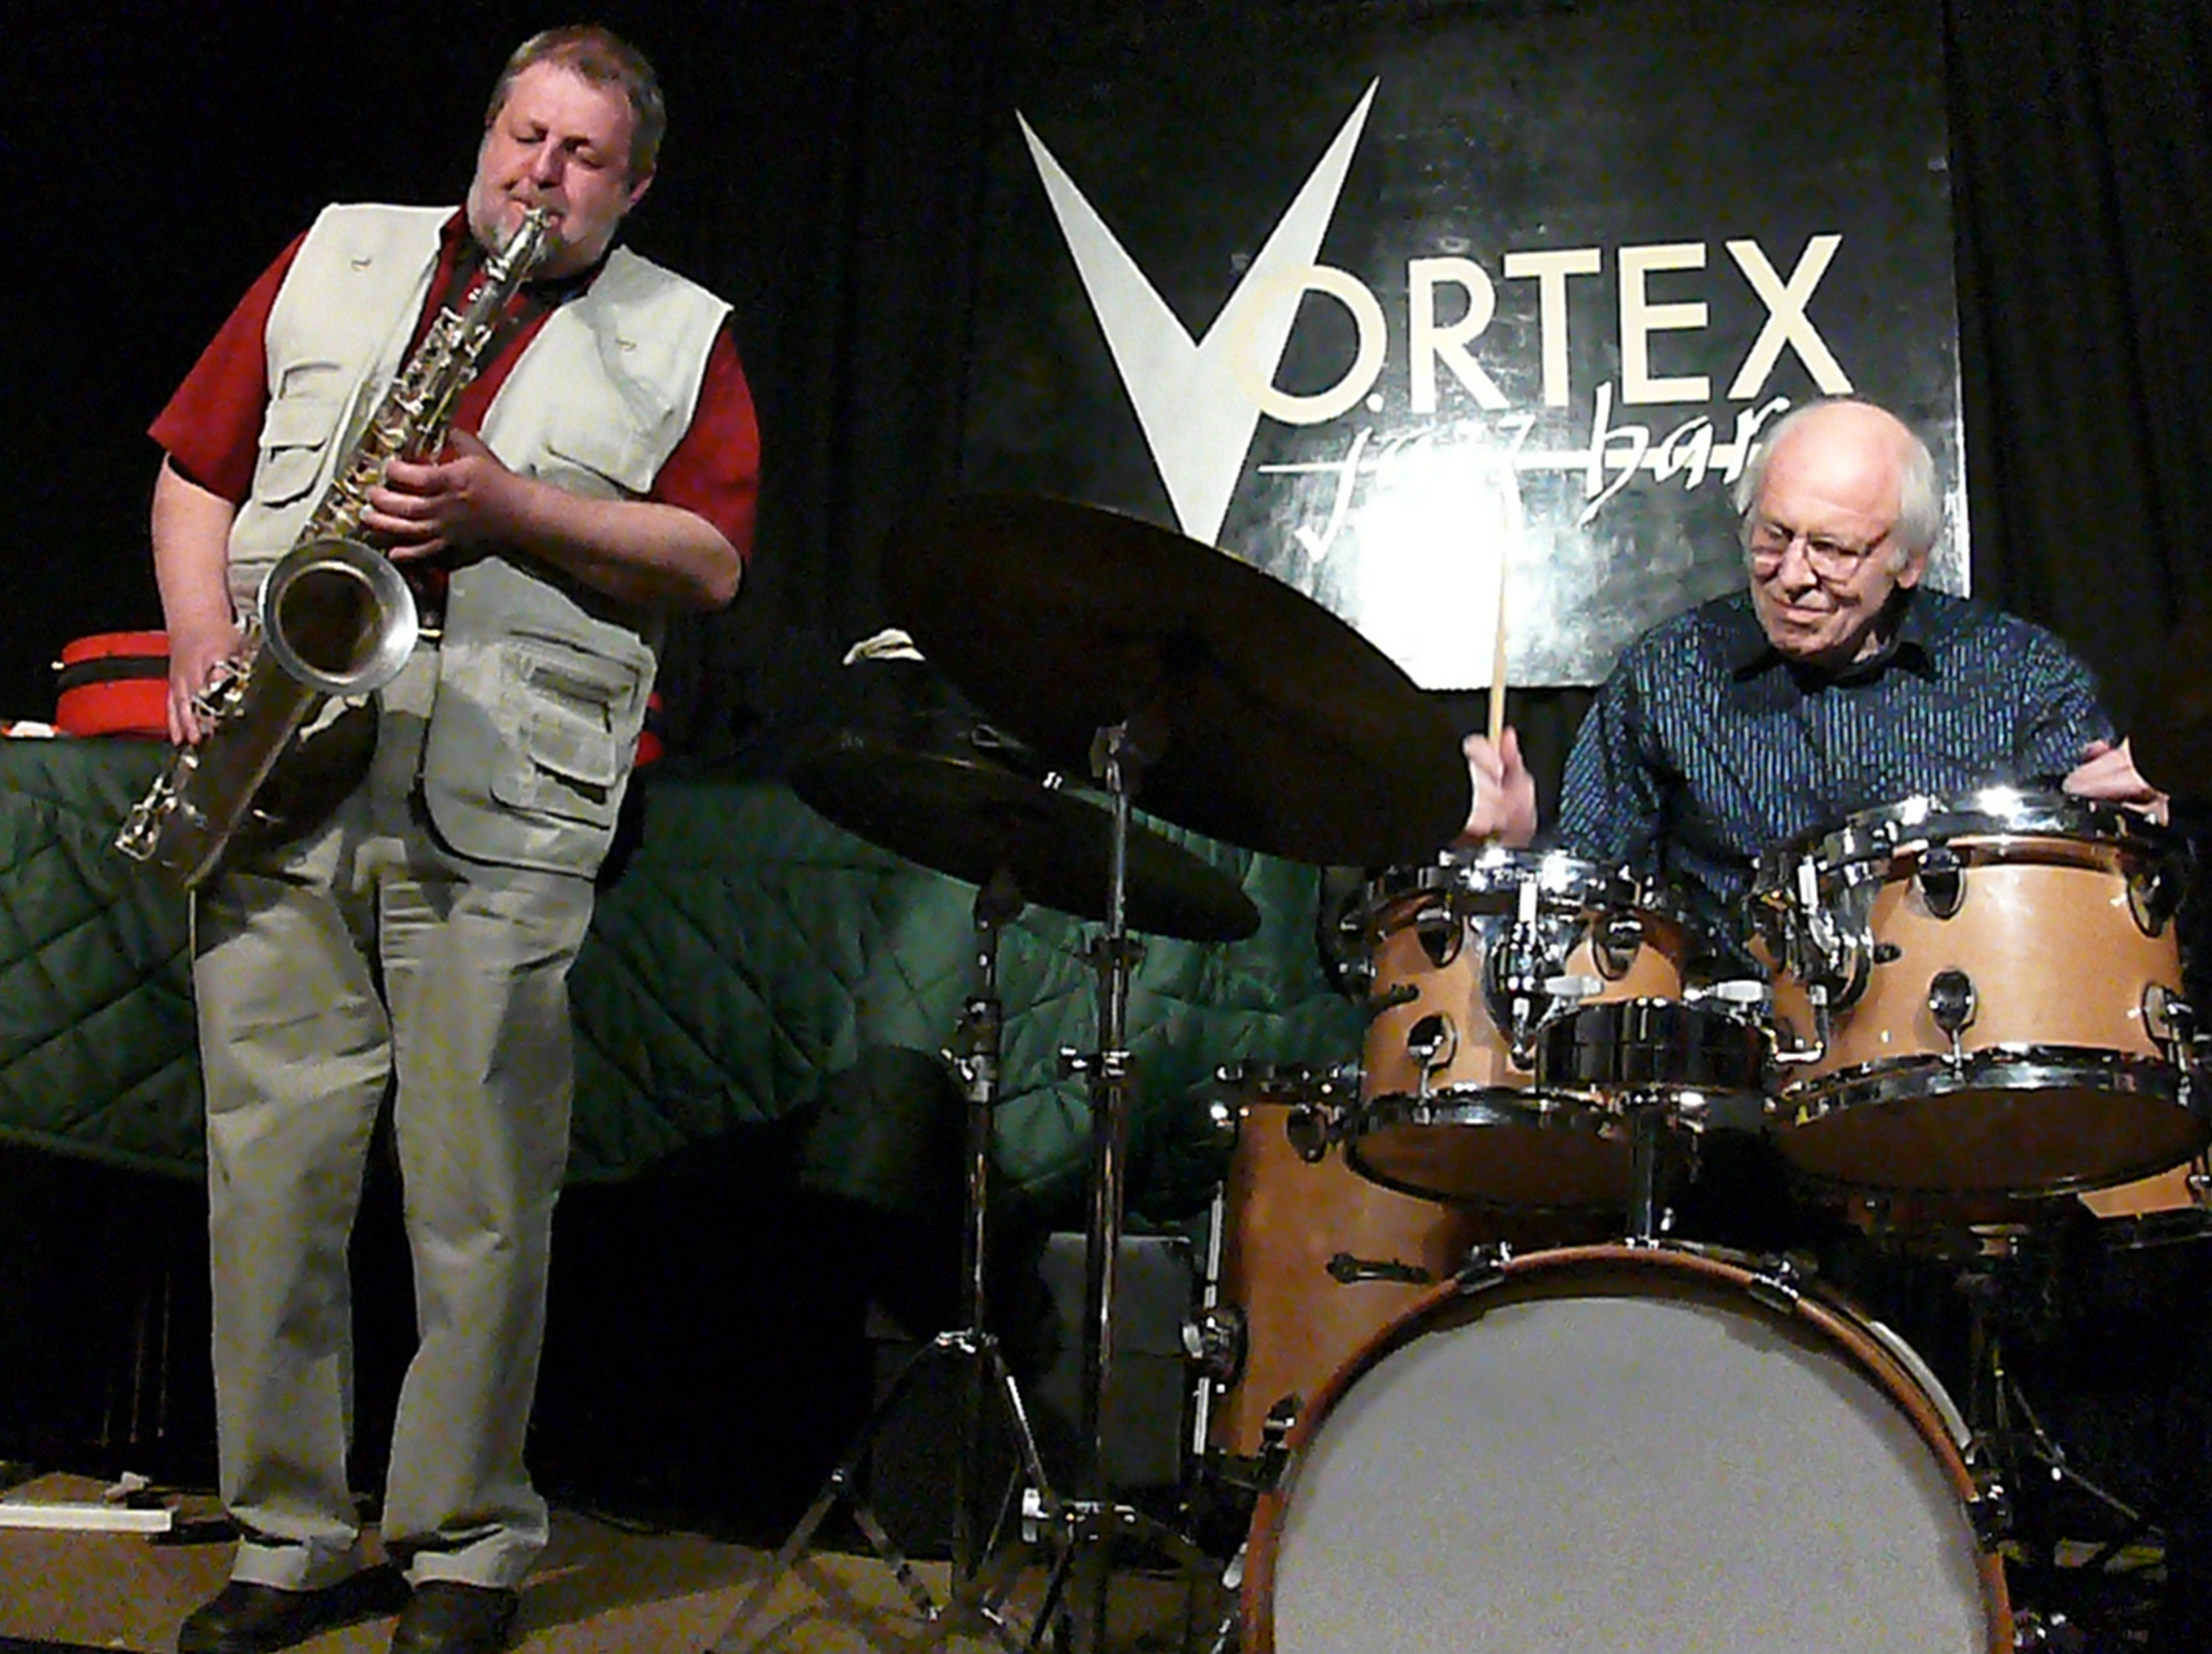 Paul Dunmall and Tony Levin at the Vortex, London, February 2010